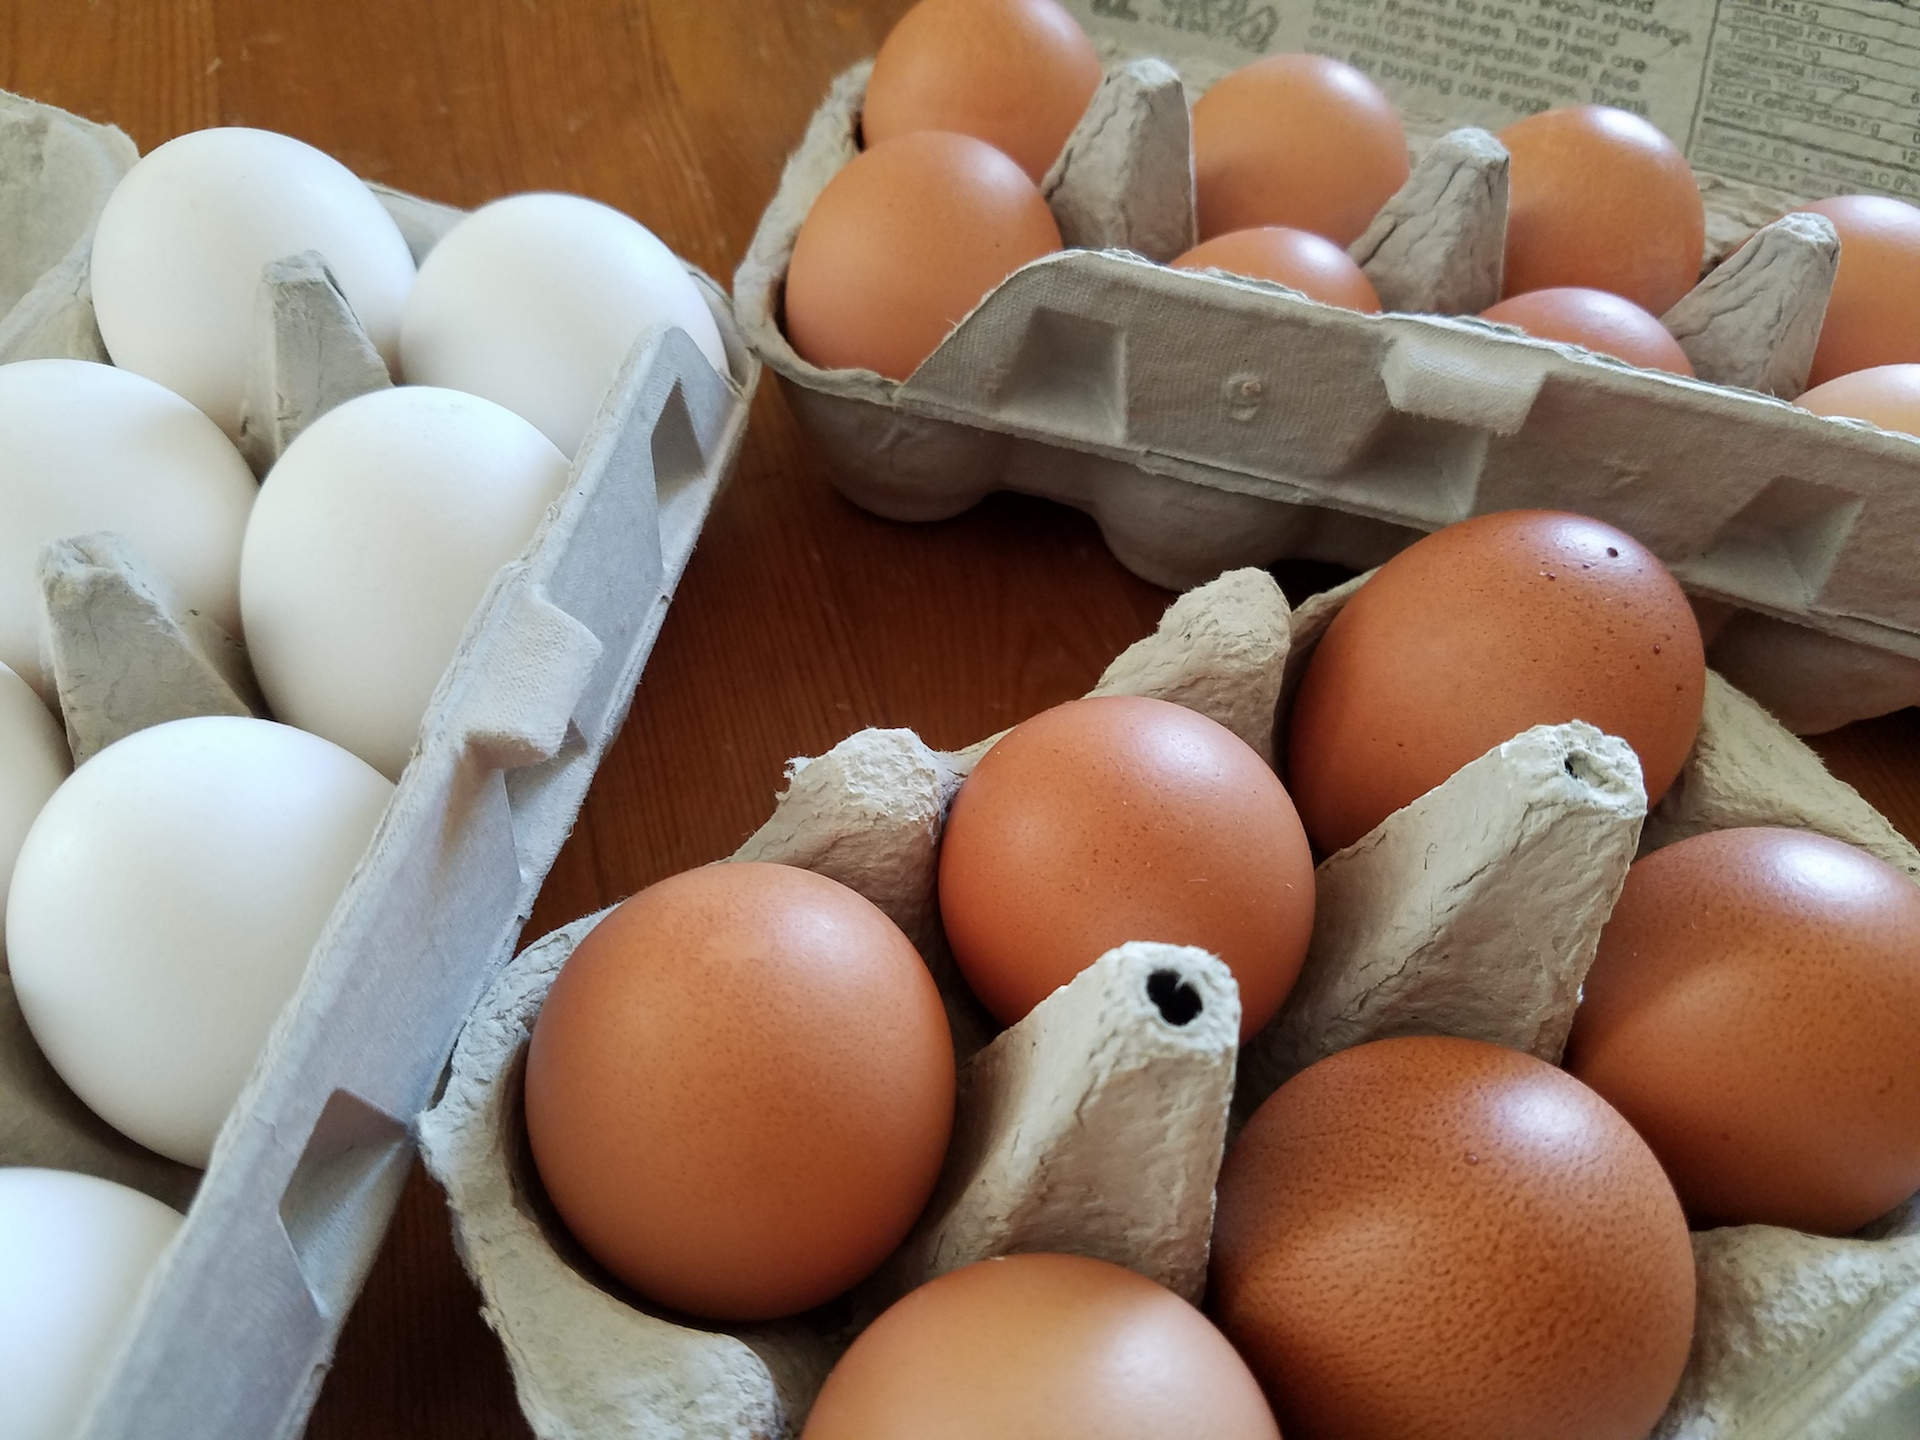 Eggs from Uncle Eddie's, Judy's Family Farm, and Rock Island.